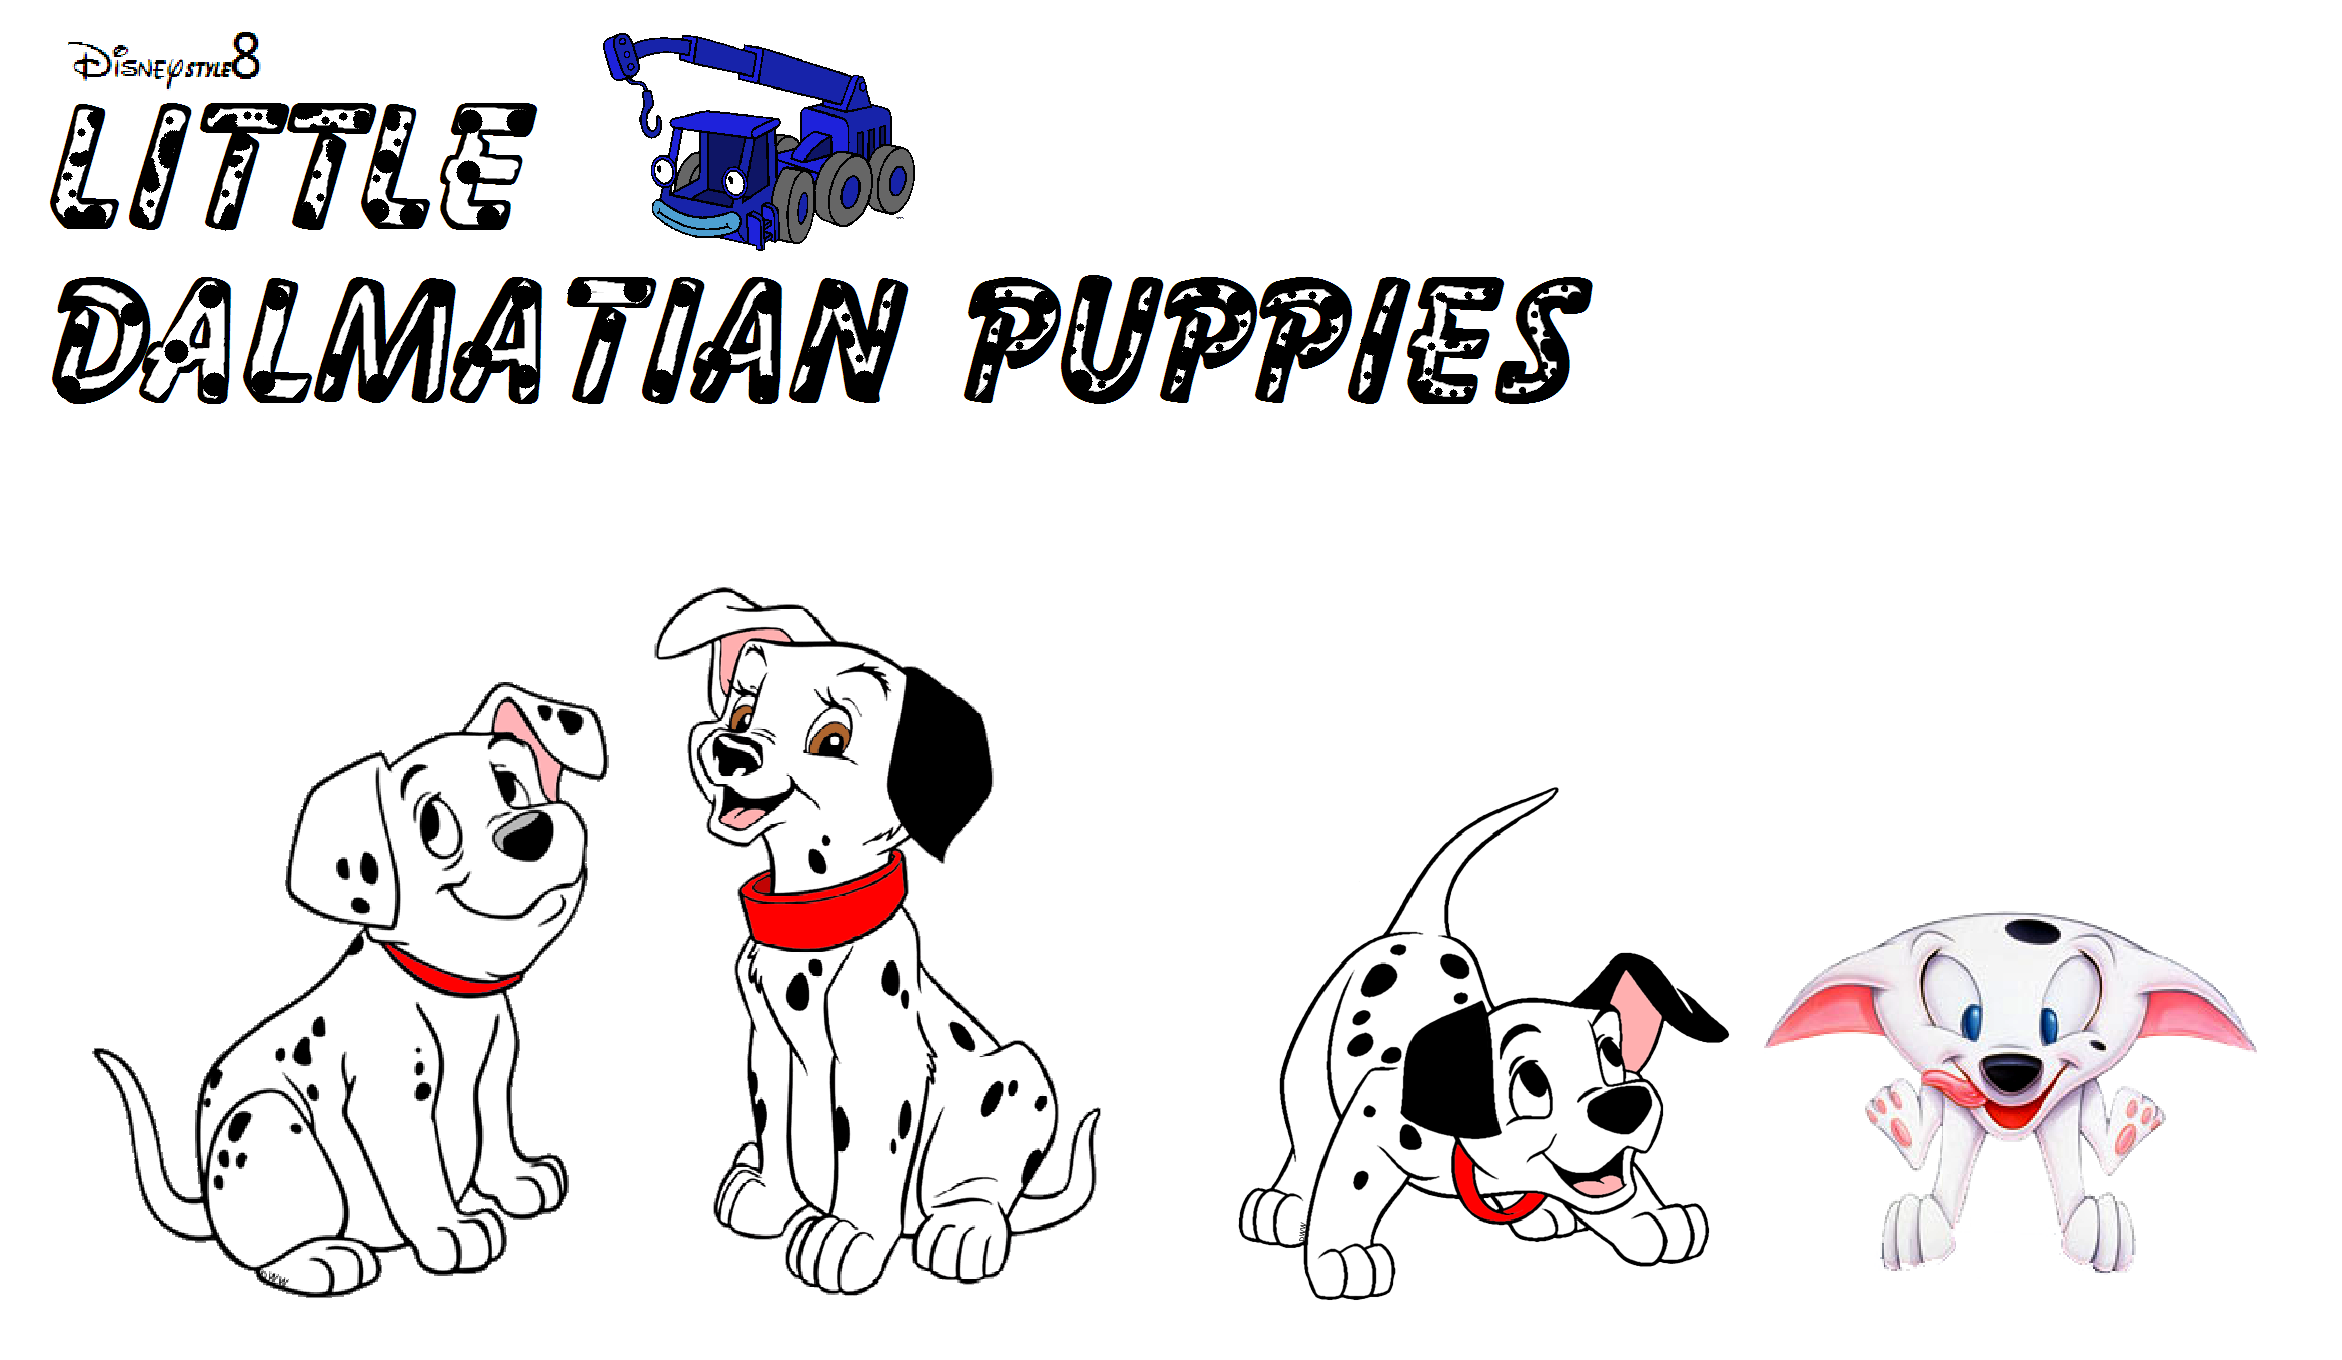 Little Dalmatian Puppies